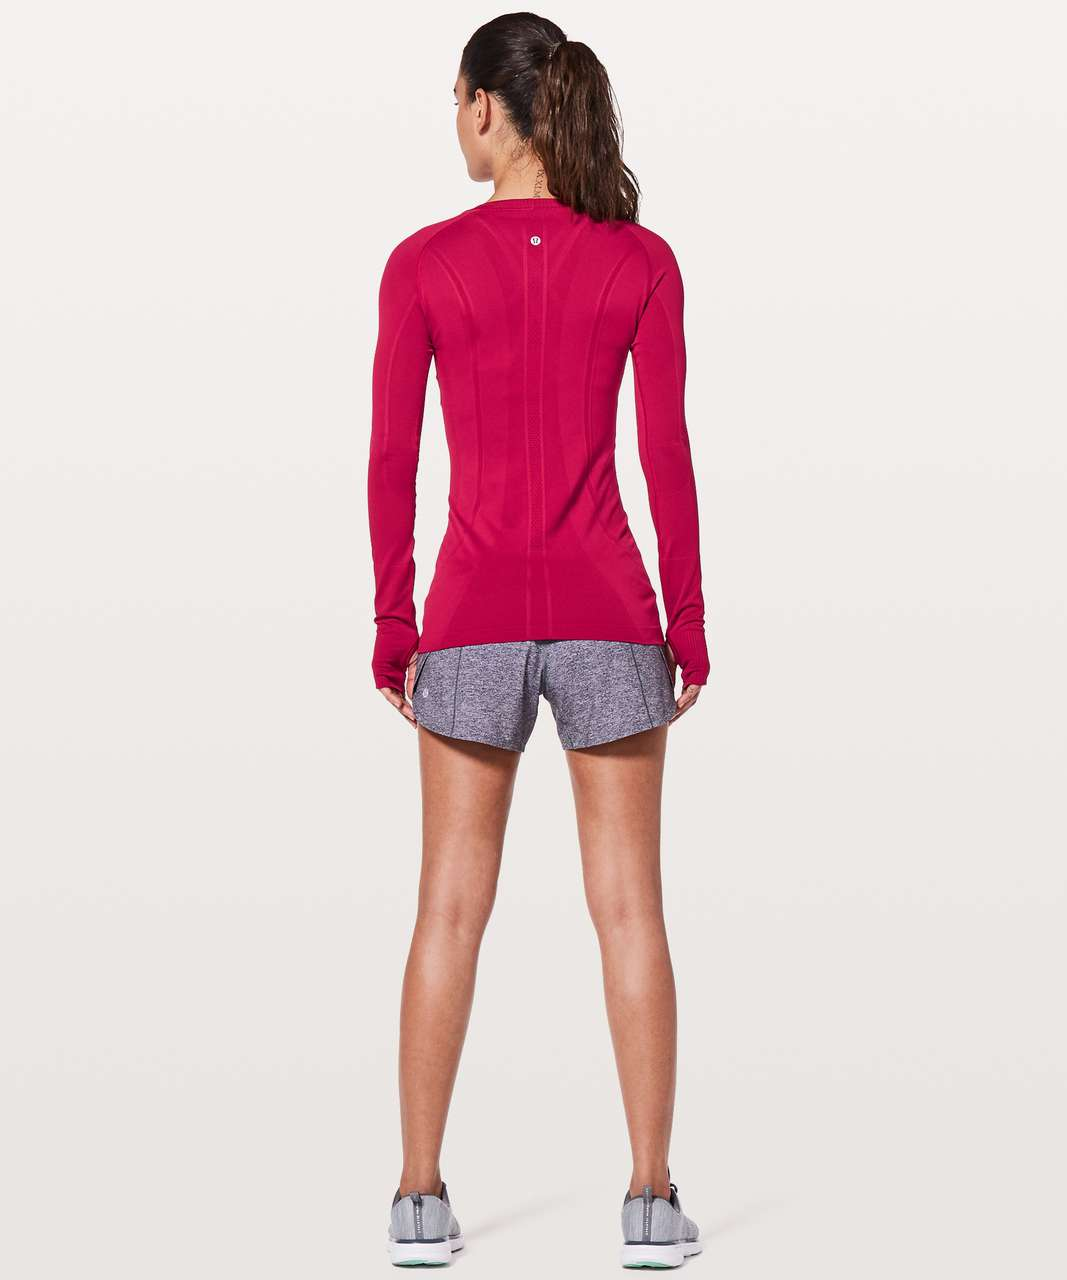 Lululemon Swiftly Tech Long Sleeve Crew - Ruby Red / Ruby Red